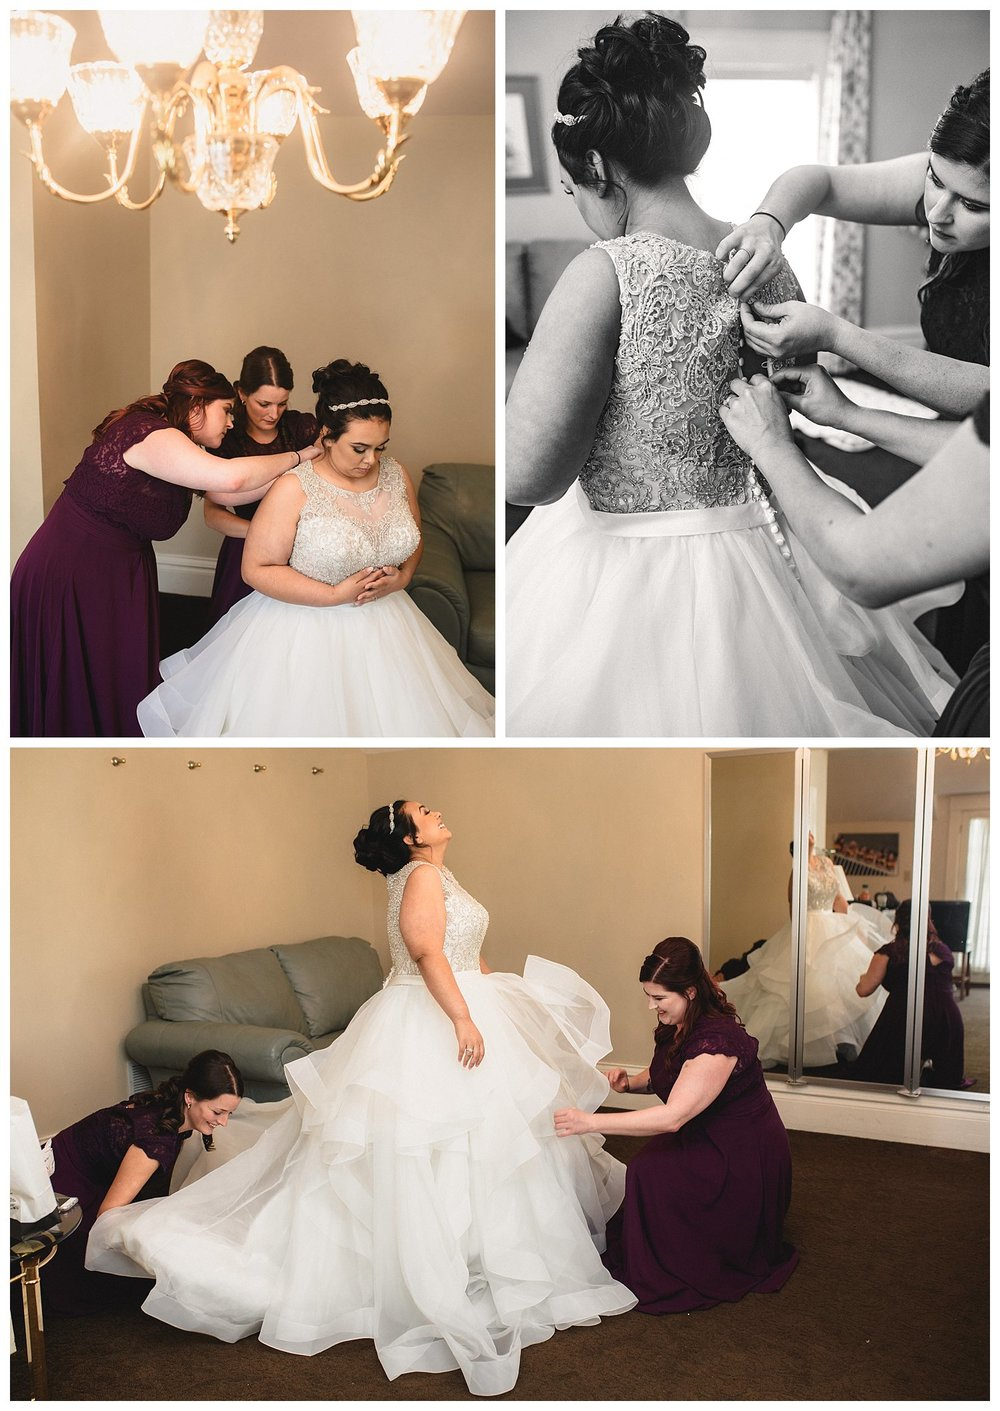 Kelsey_Diane_Photography_Hawthorne_House_Parkville_Kansas_City_Wedding_Veronica_Pat_0014.jpg